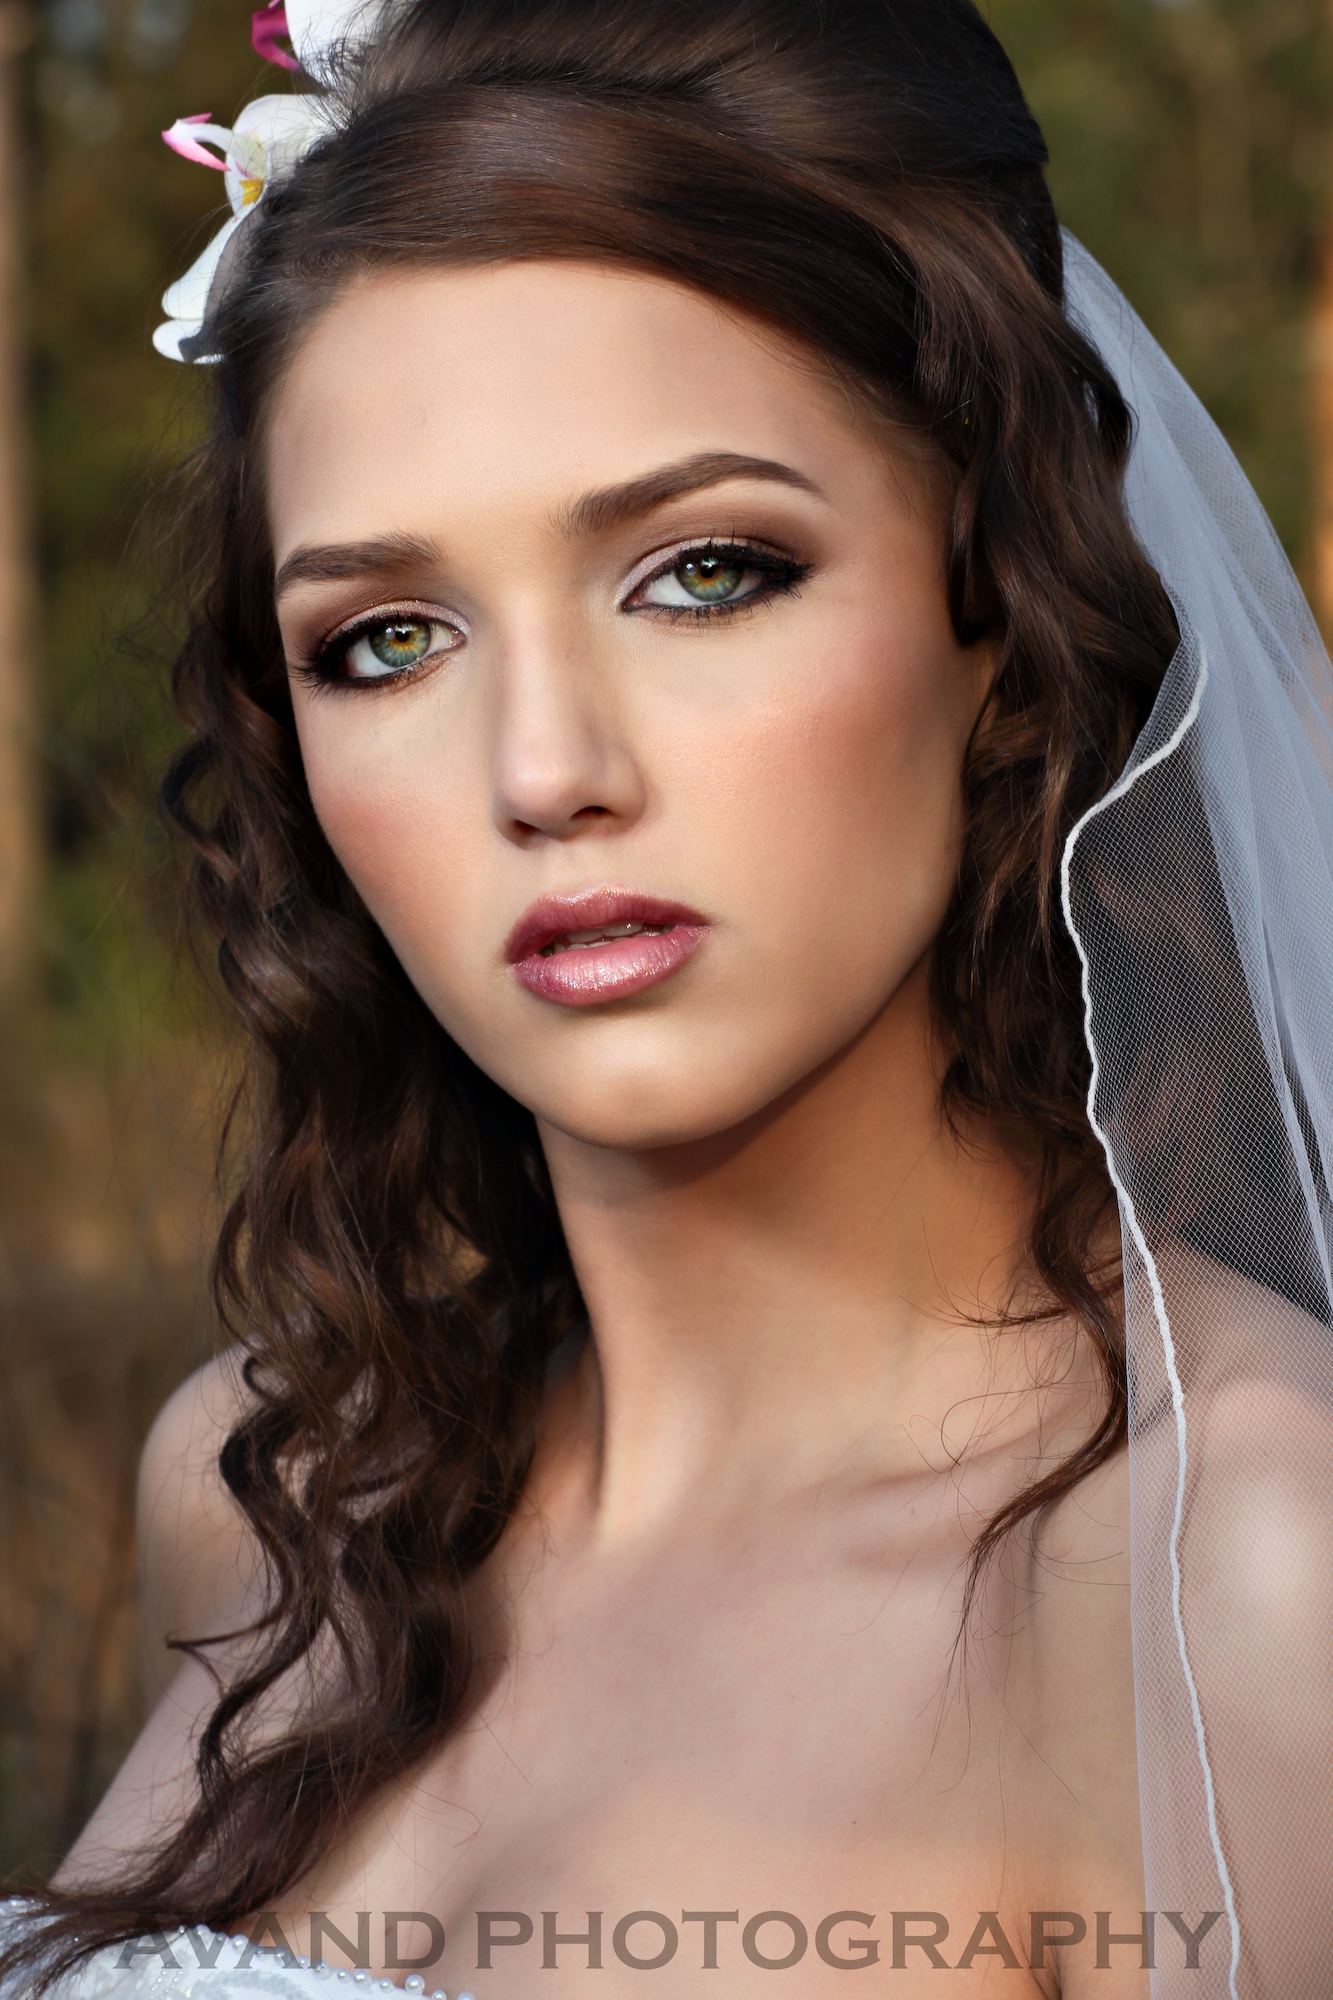 Bridal Makeup Professional Makeup Artist Houston Texas Kristin